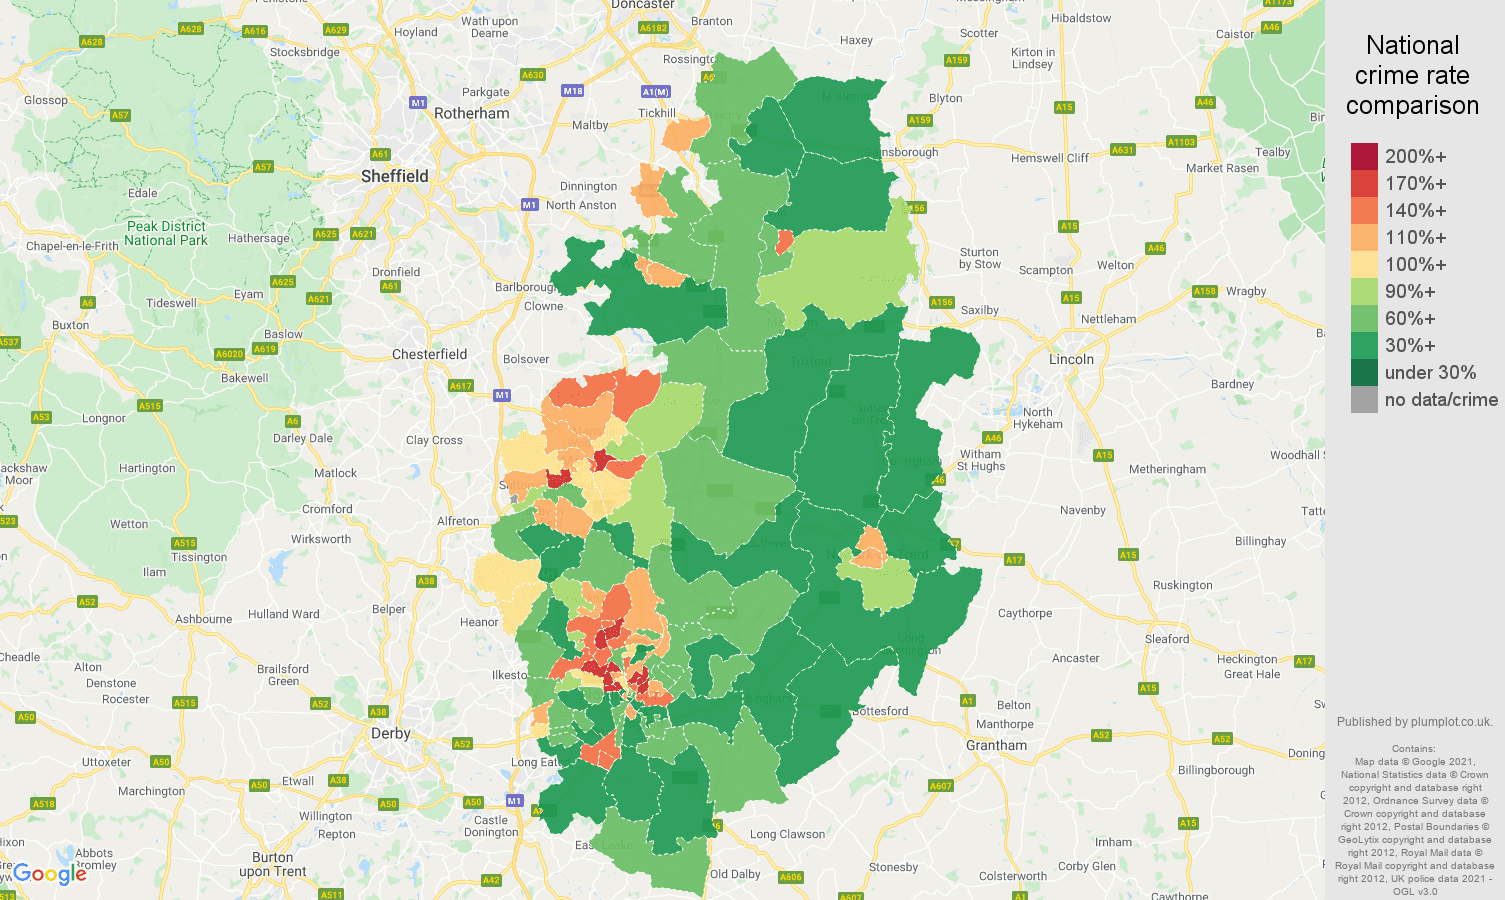 Nottinghamshire violent crime rate comparison map